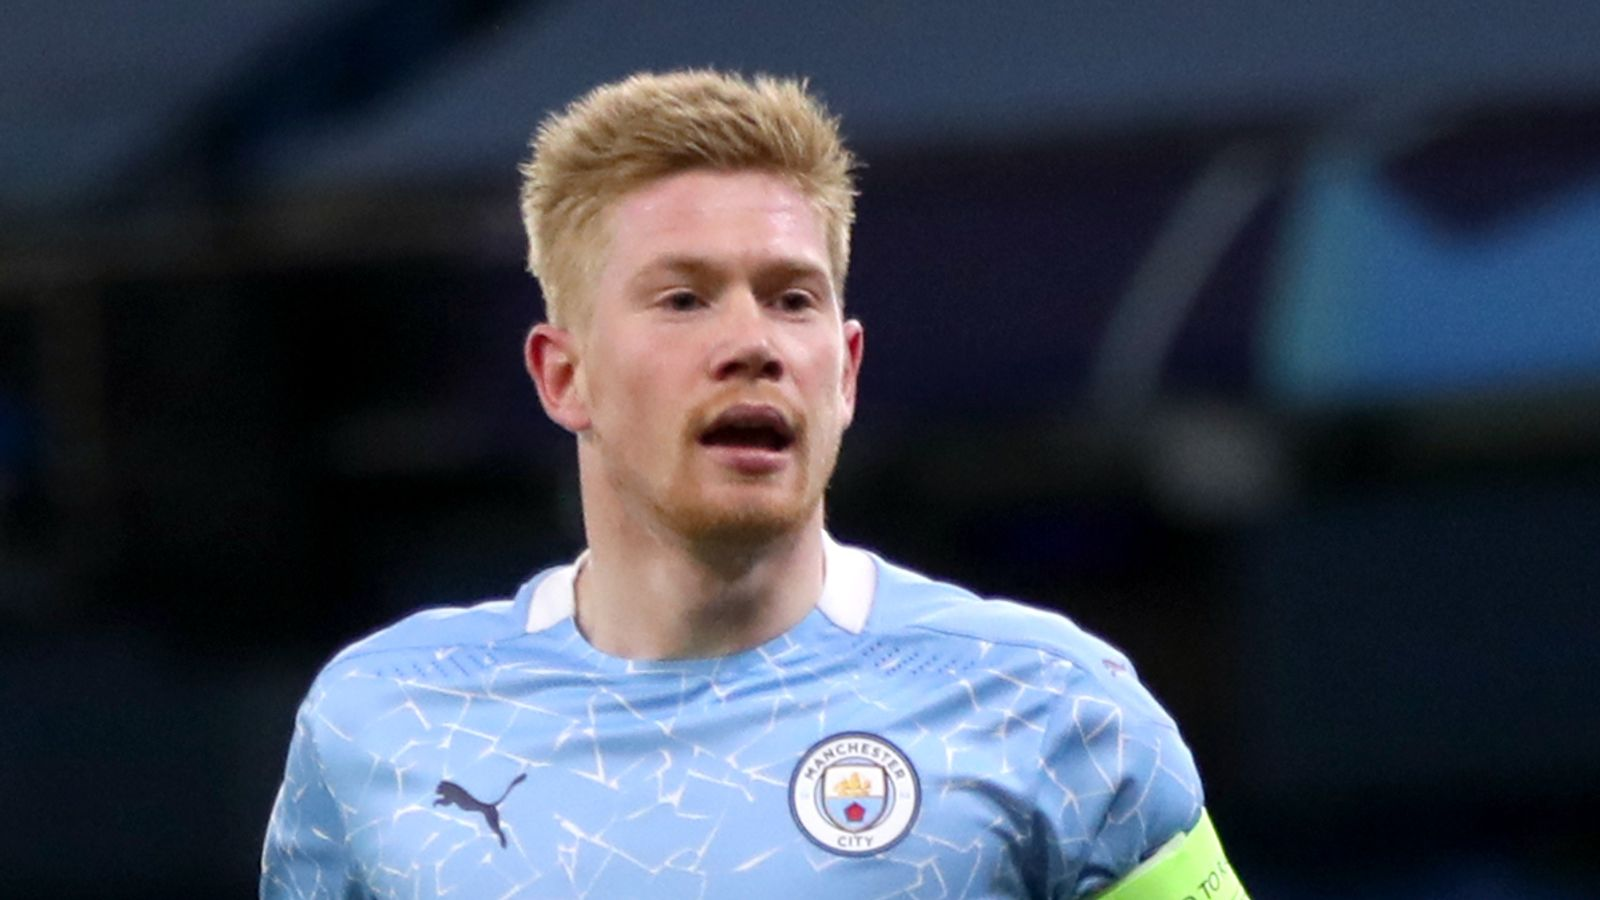 Kevin De Bruyne: Manchester City midfielder signs two-year contract extension until 2025